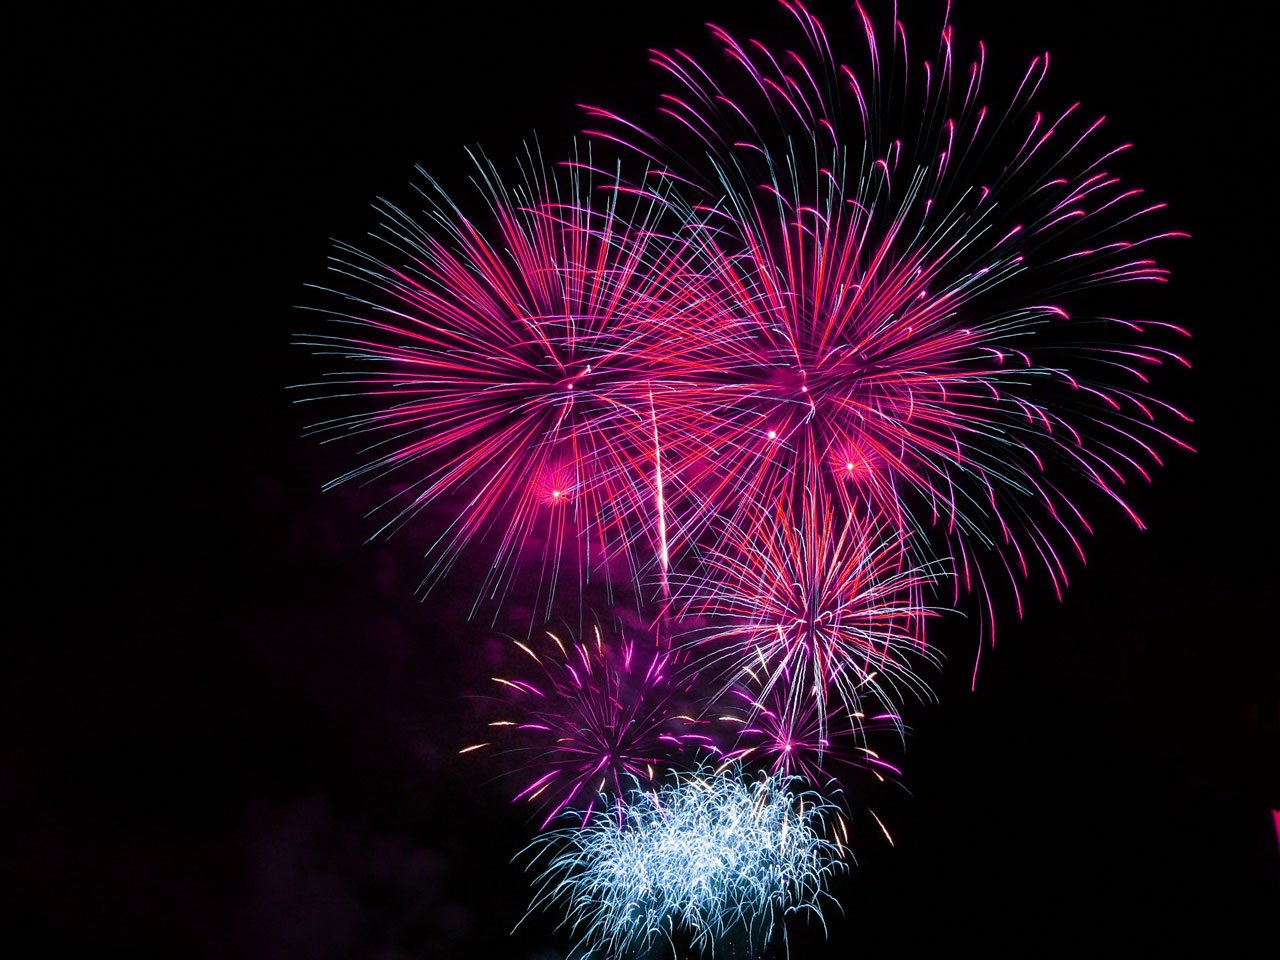 Where to see fireworks in and around Bury St Edmunds